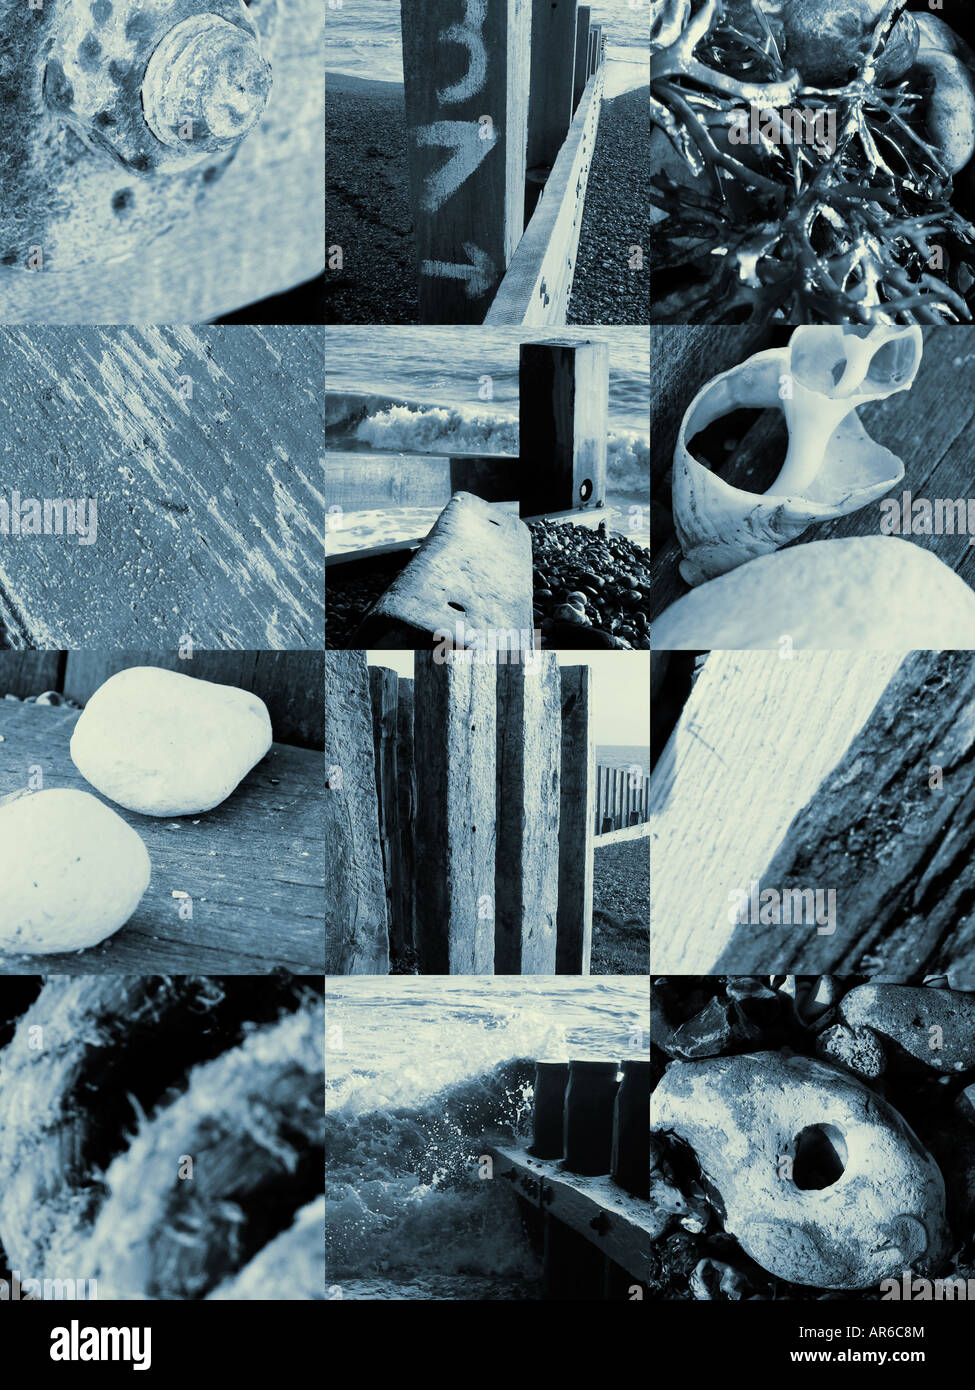 Black and white montage of items found on the seashore Stock Photo